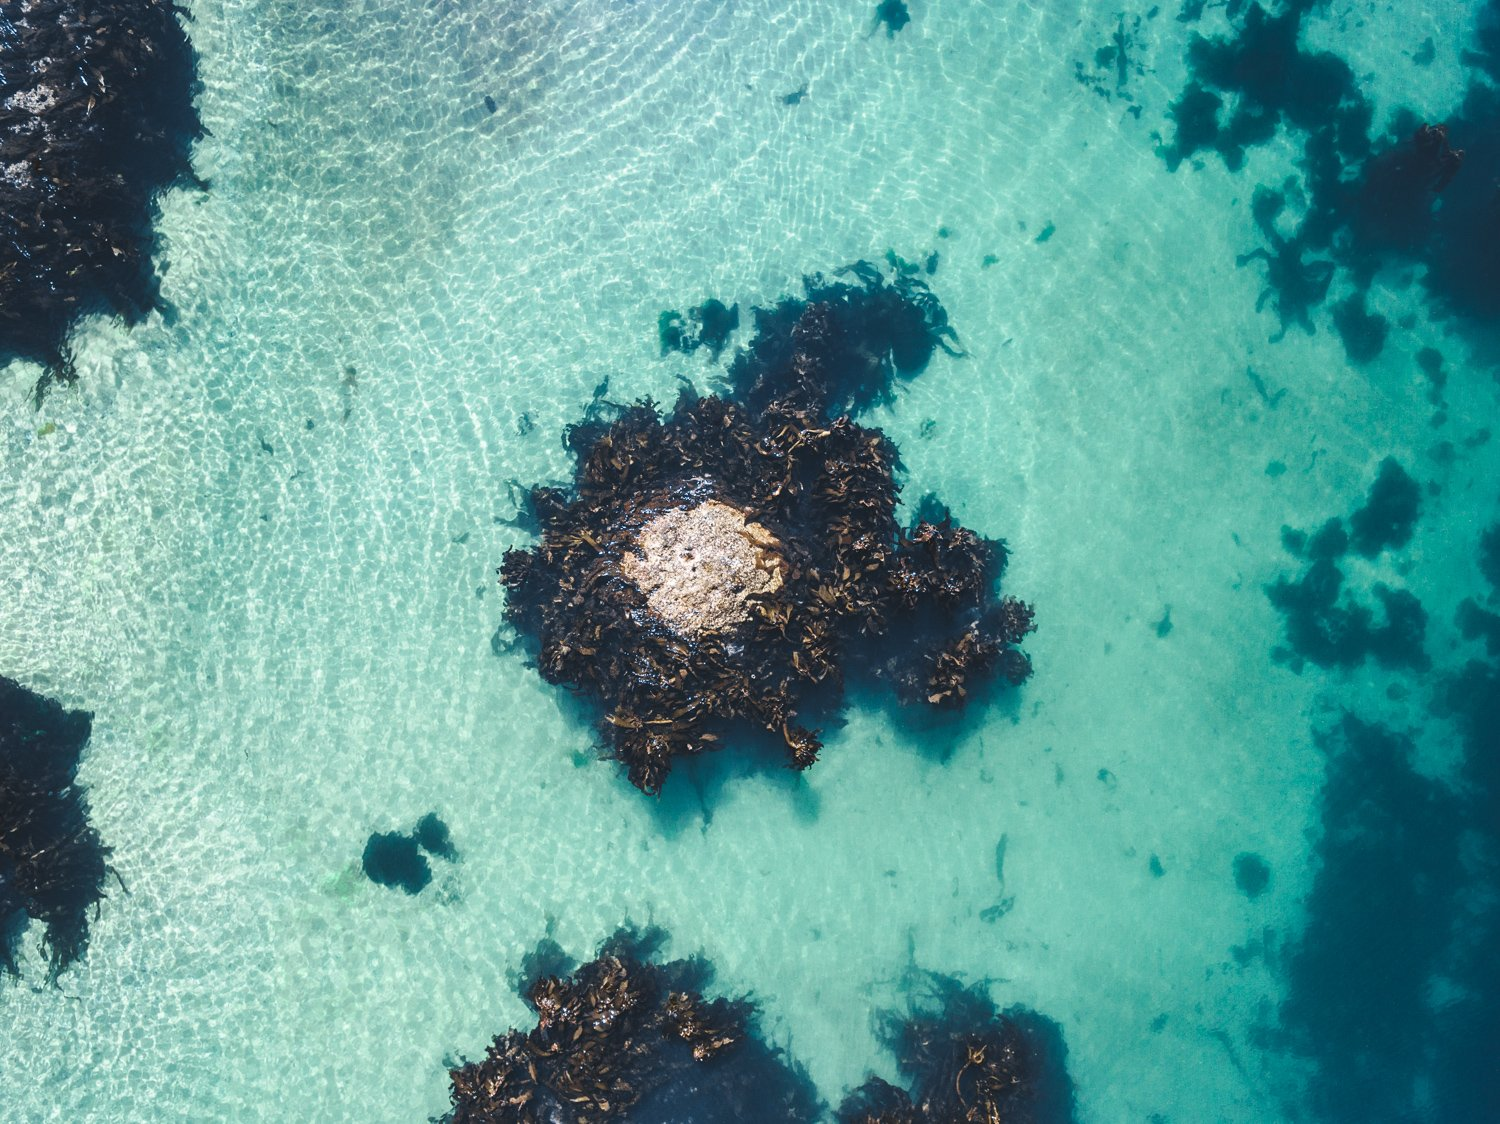 One rock with seaweed in middle of blue green water from above